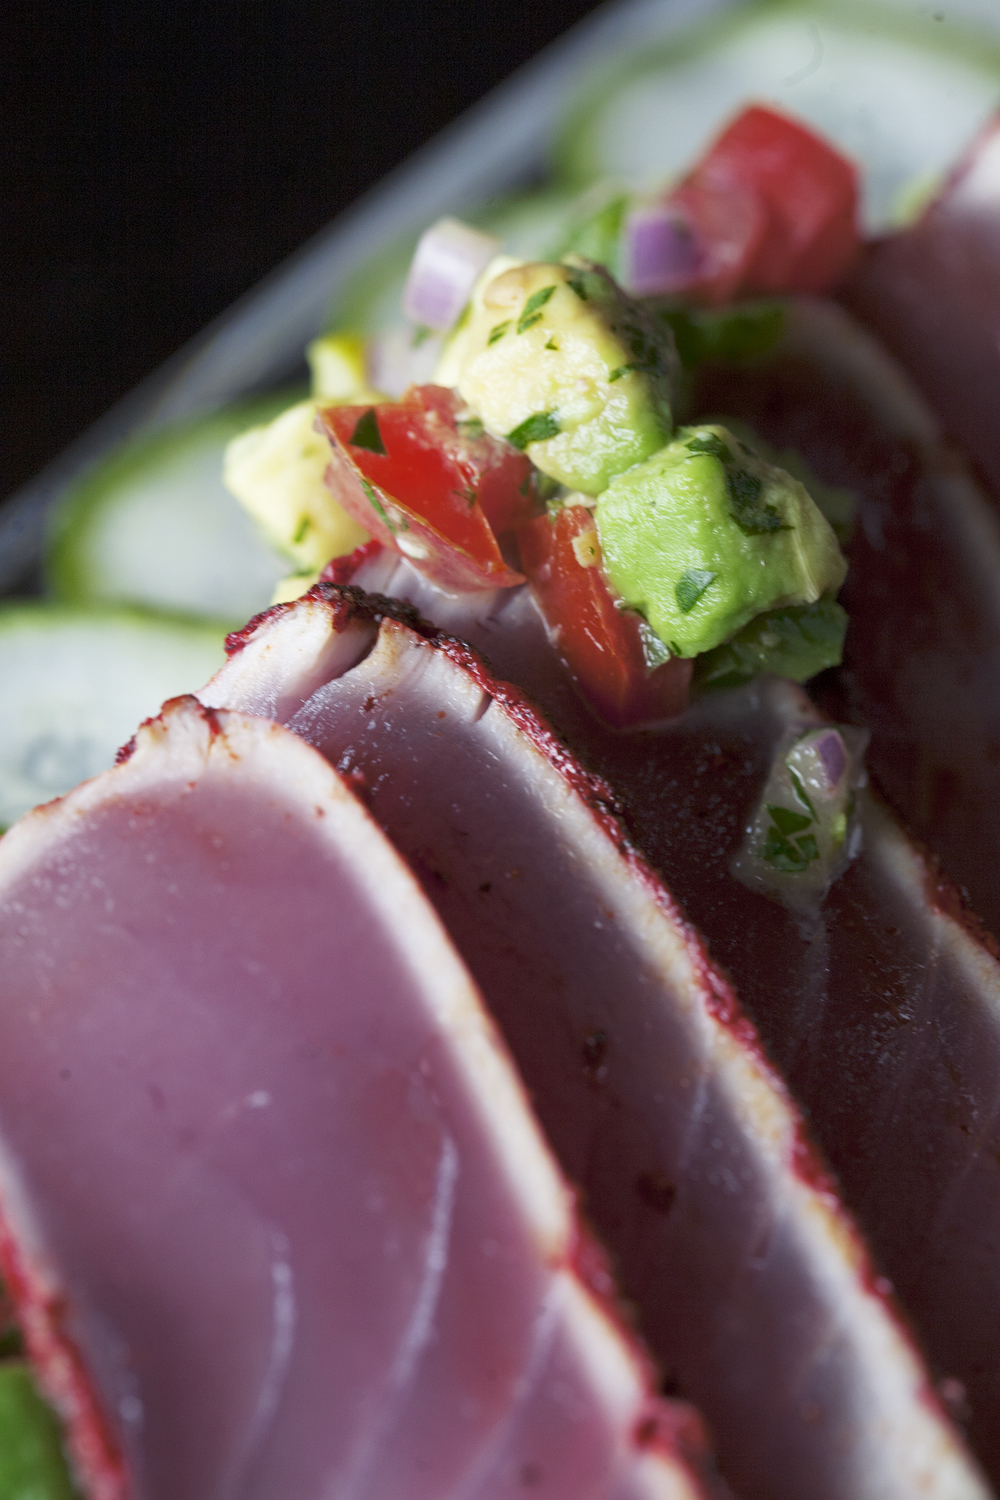 Adobo Rubbed Seared Ahi Tuna with Avocado Salad and Cucumber